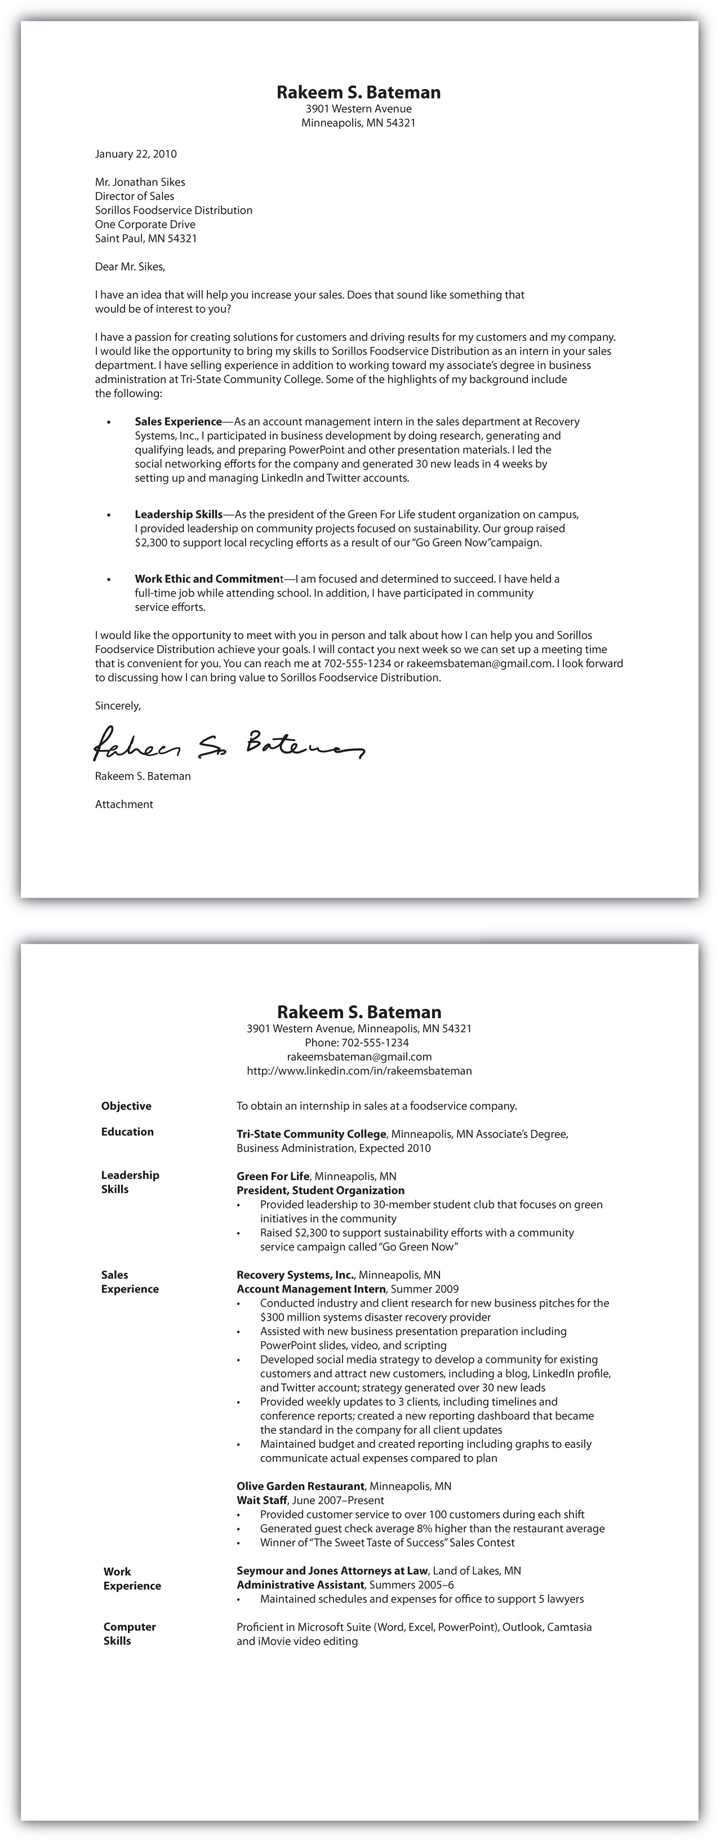 selling résumé and cover letter essentials best for resume footprint complaints free Resume Best Cover Letter For Resume